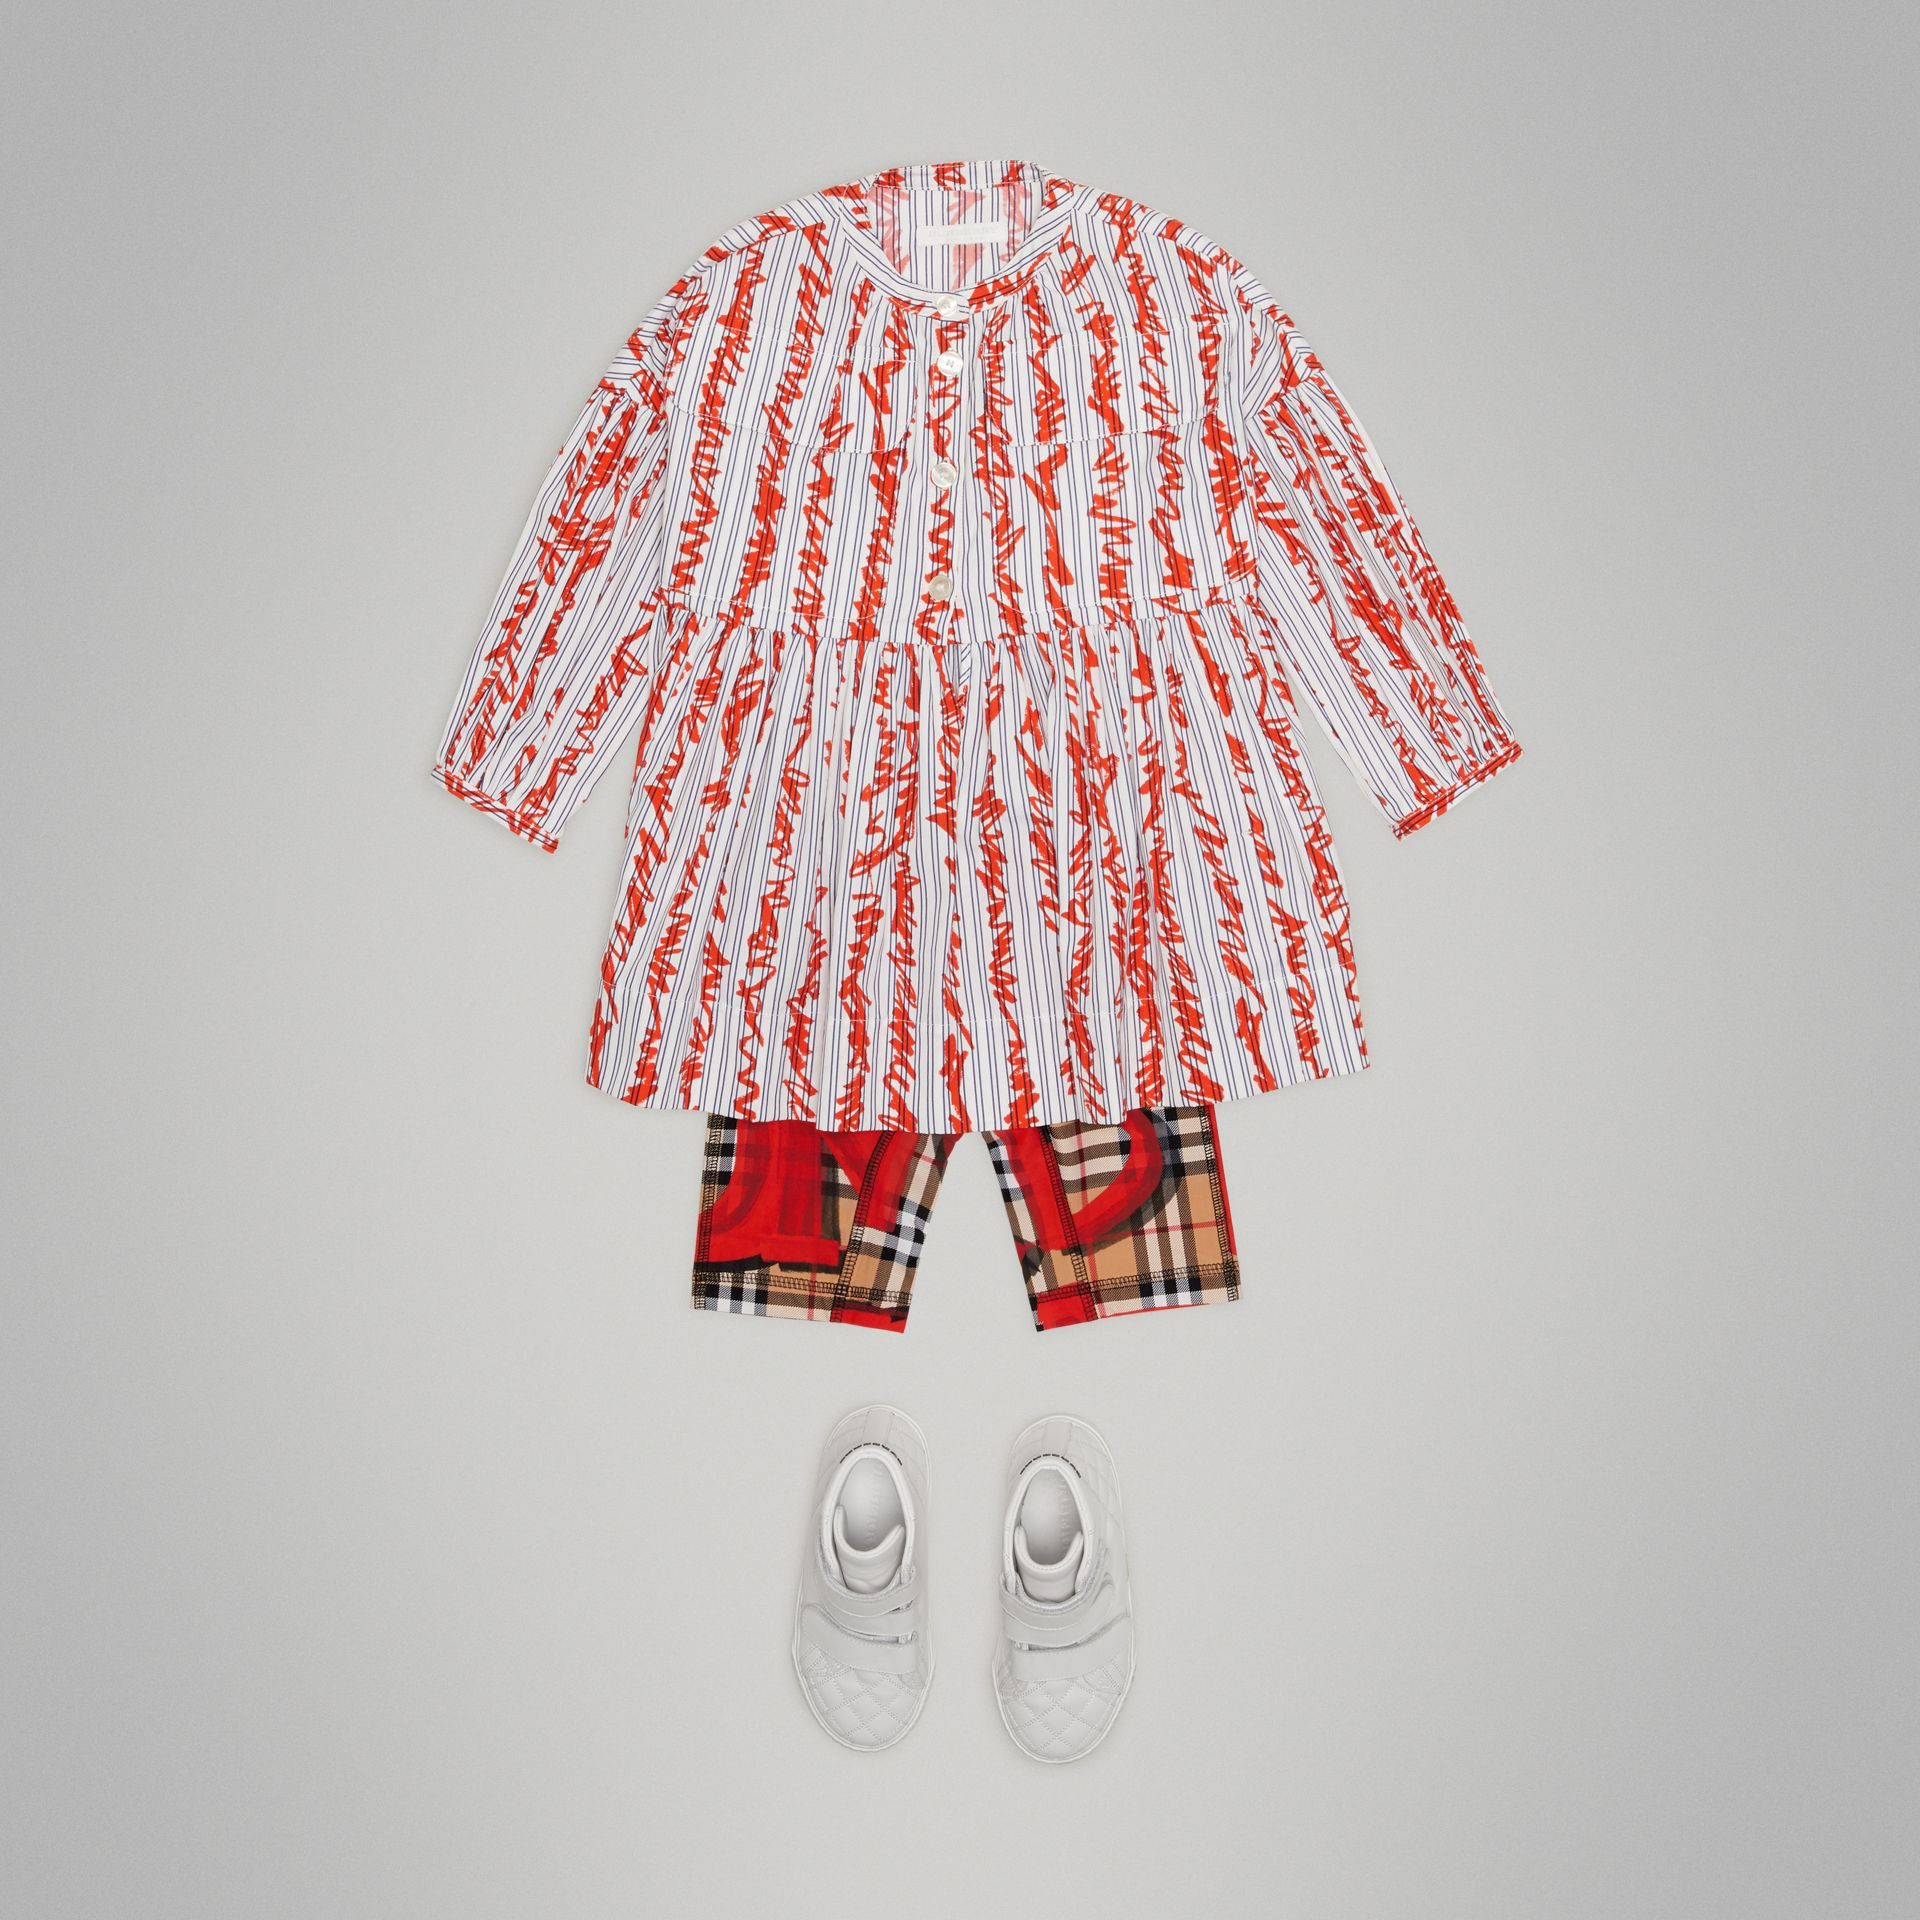 Graffiti Print Vintage Check Stretch Jersey Shorts in Bright Red | Burberry - gallery image 2